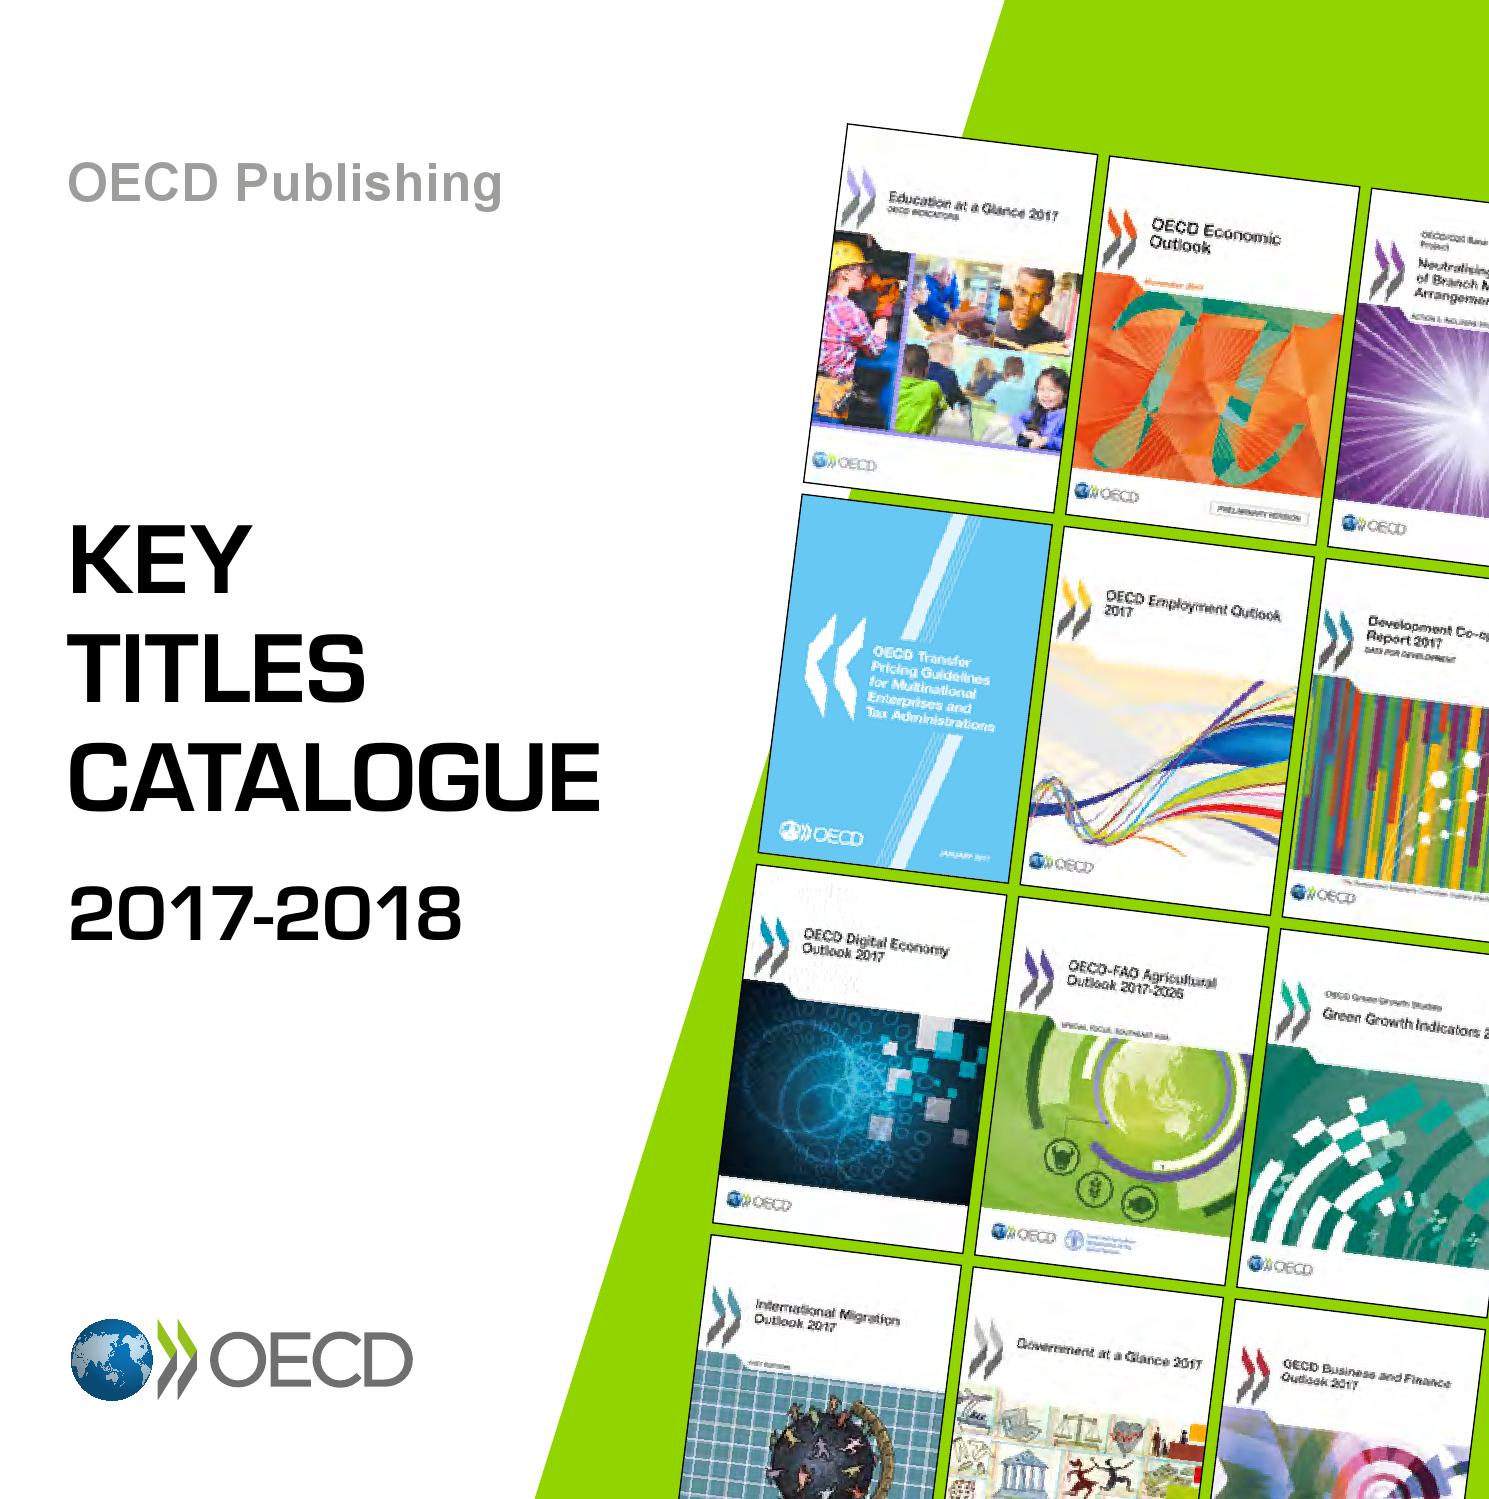 OECD Key Titles Catalogue 2018 by OECD - issuu